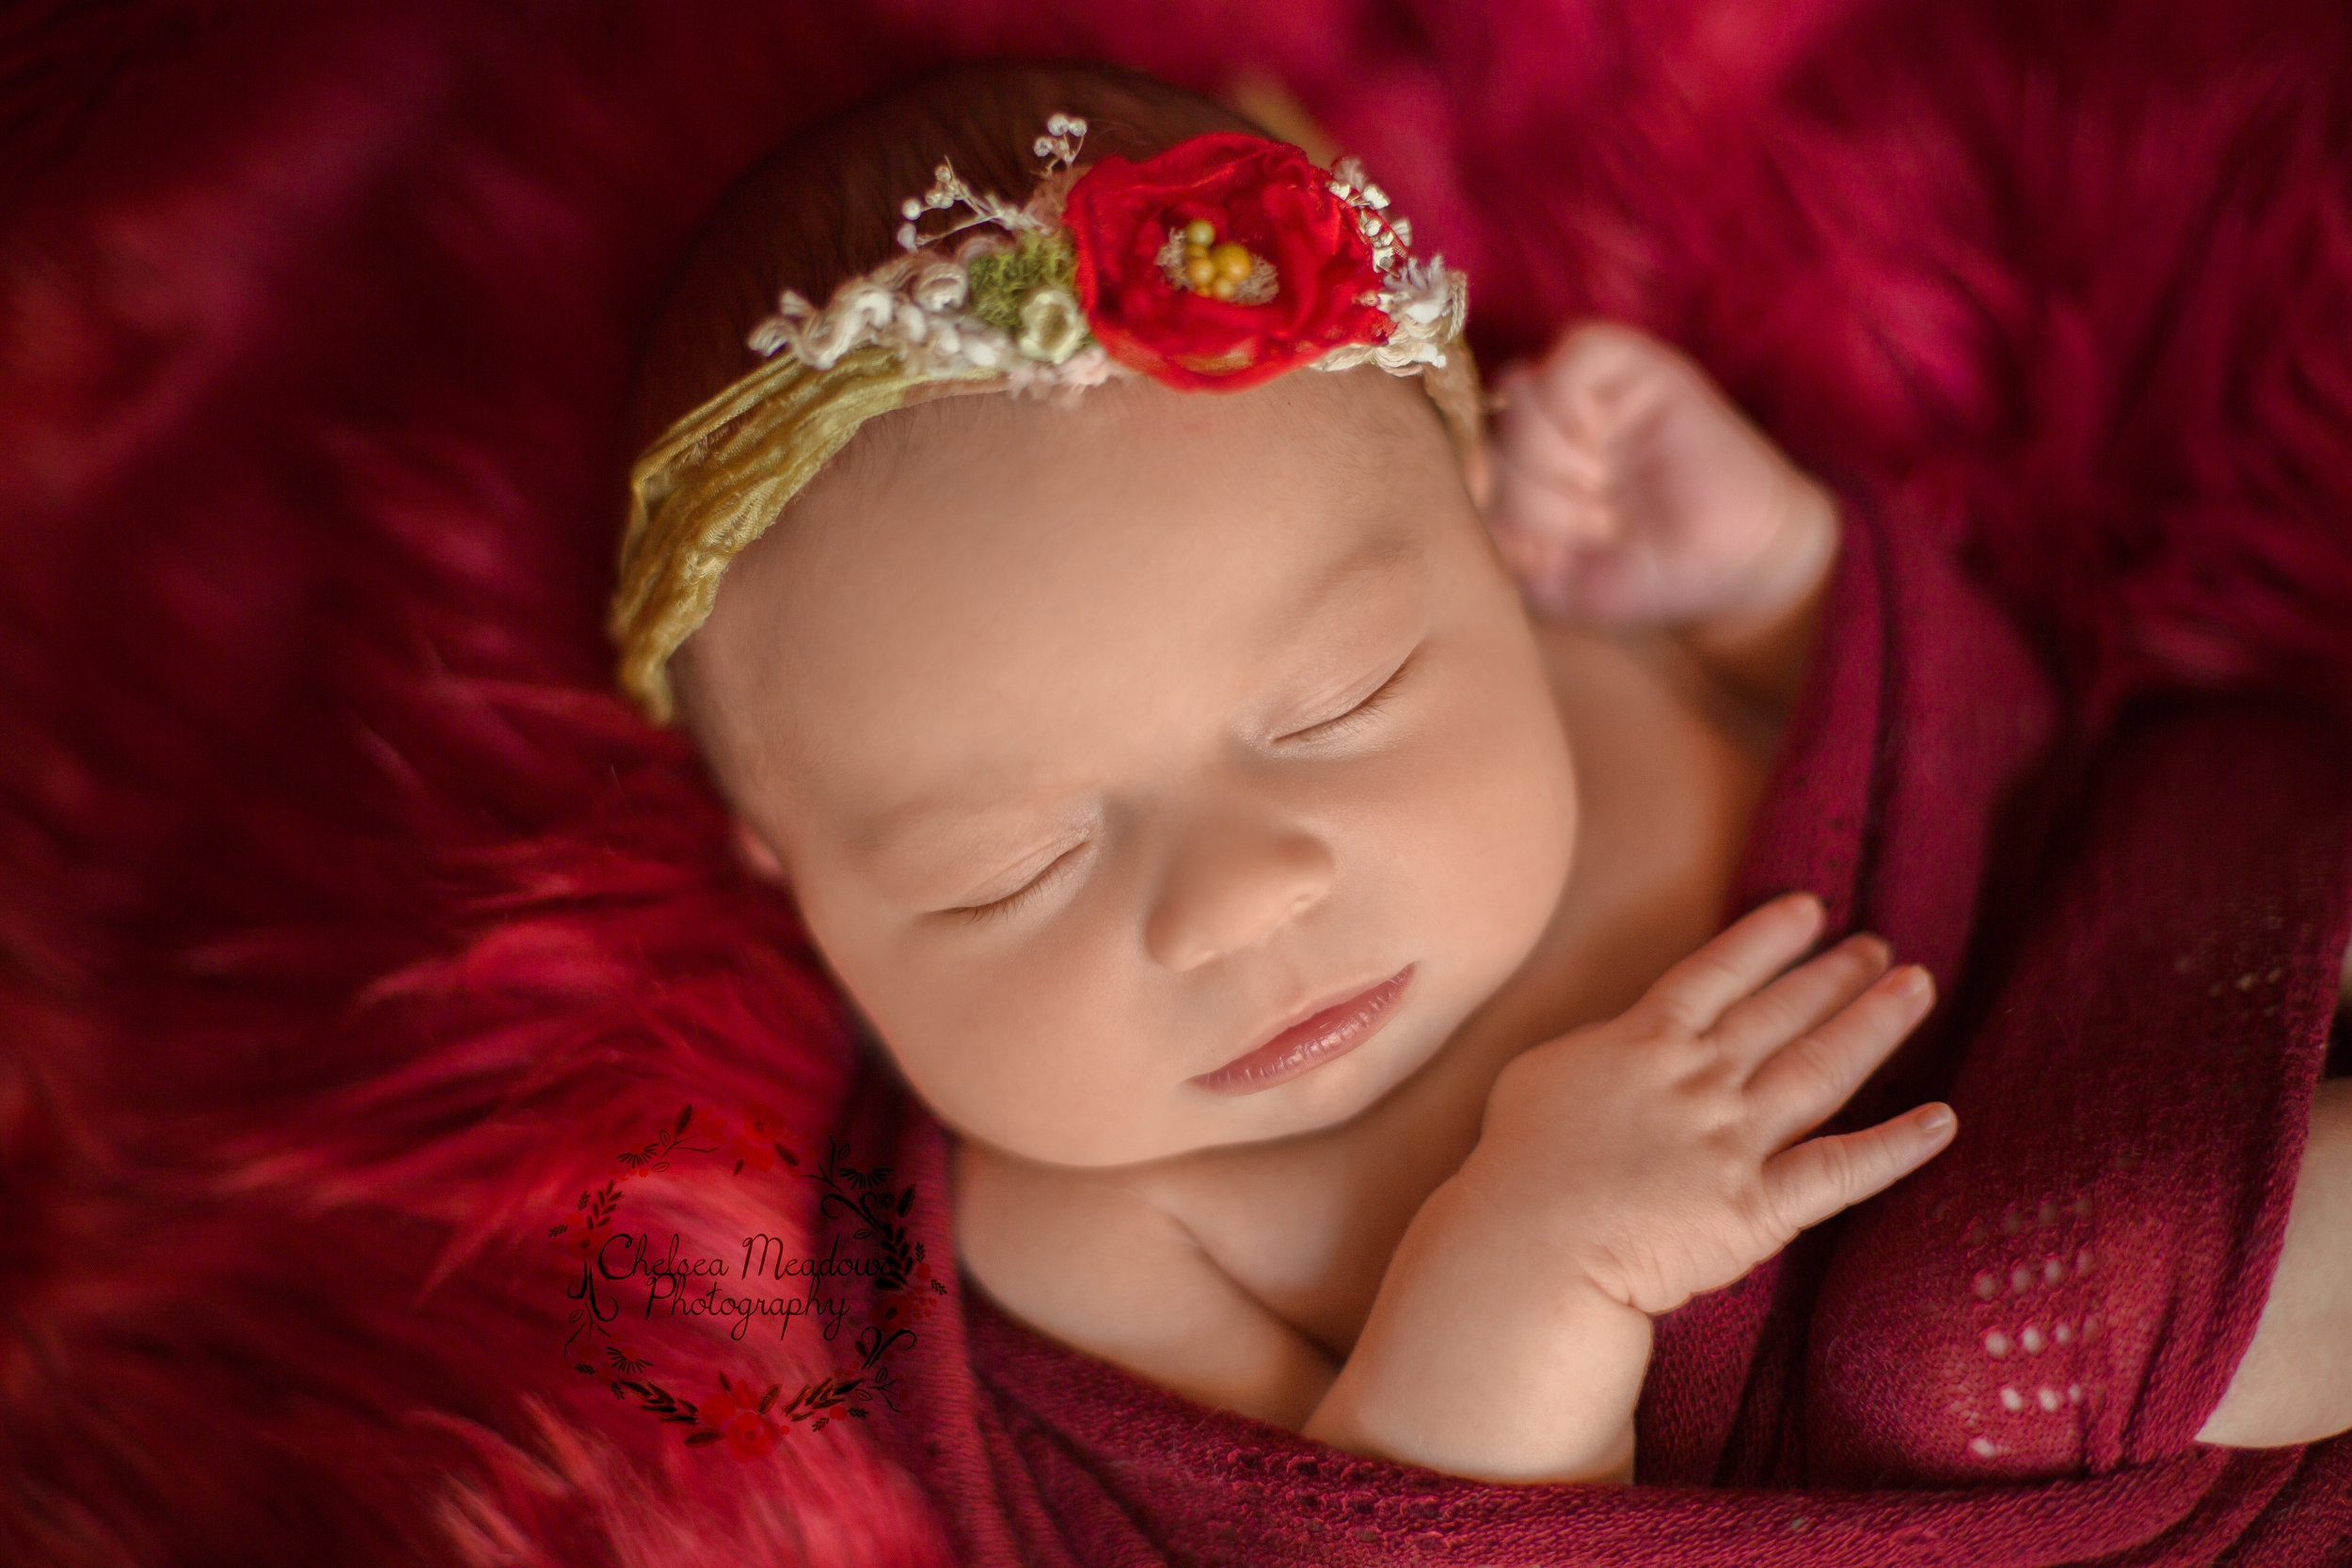 Ella Newborn Photos - Nashville Newborn Photographer - Chelsea Meadows Photography (73).jpg